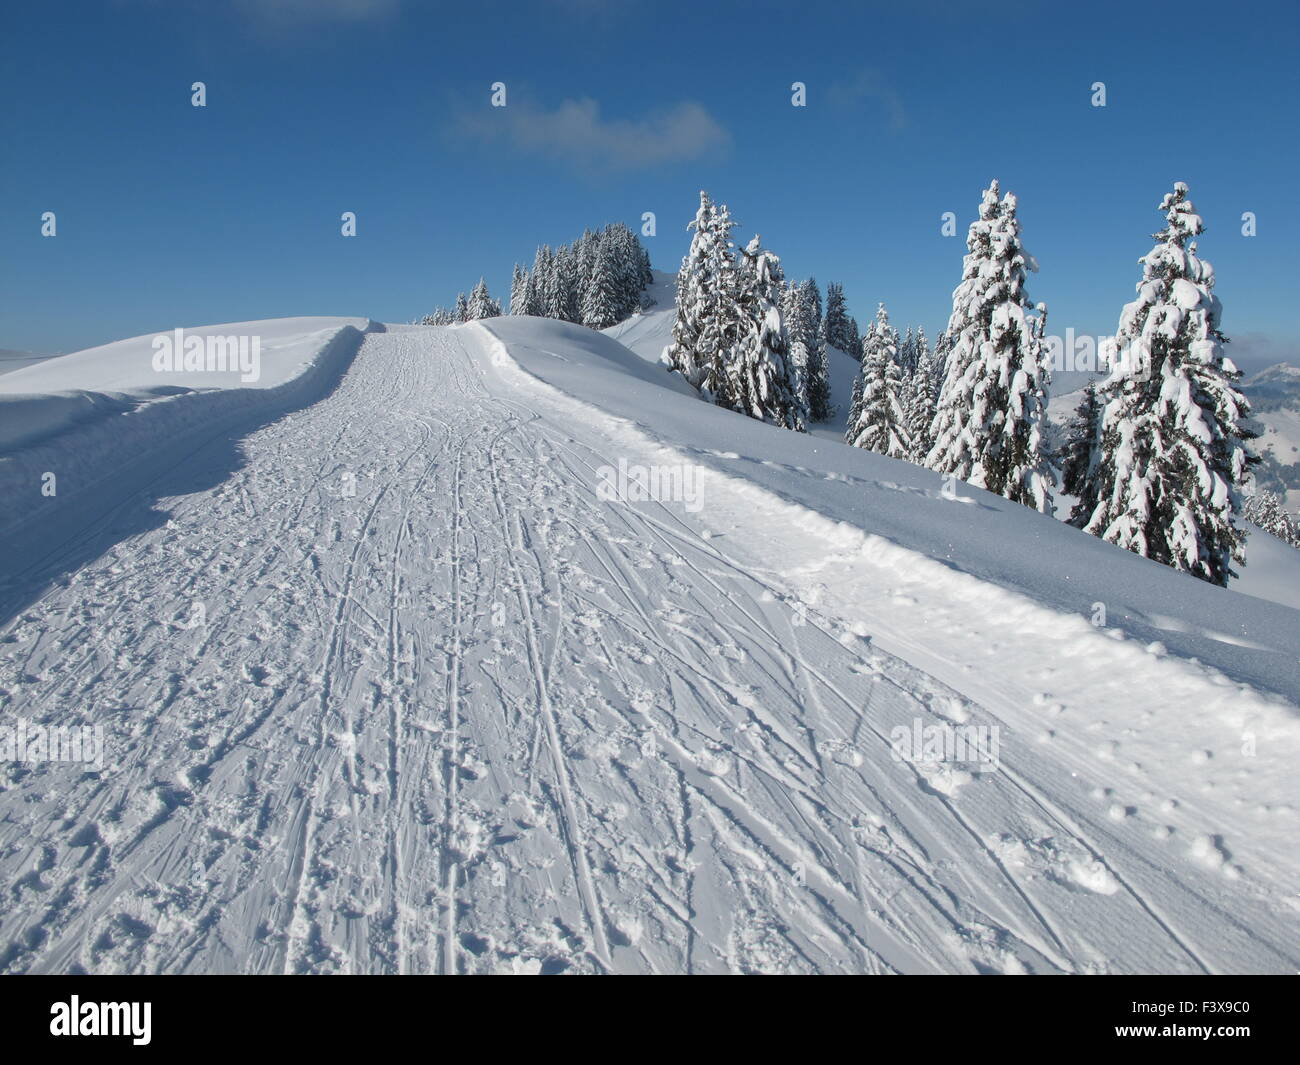 Sledging path, snow covered spruces - Stock Image